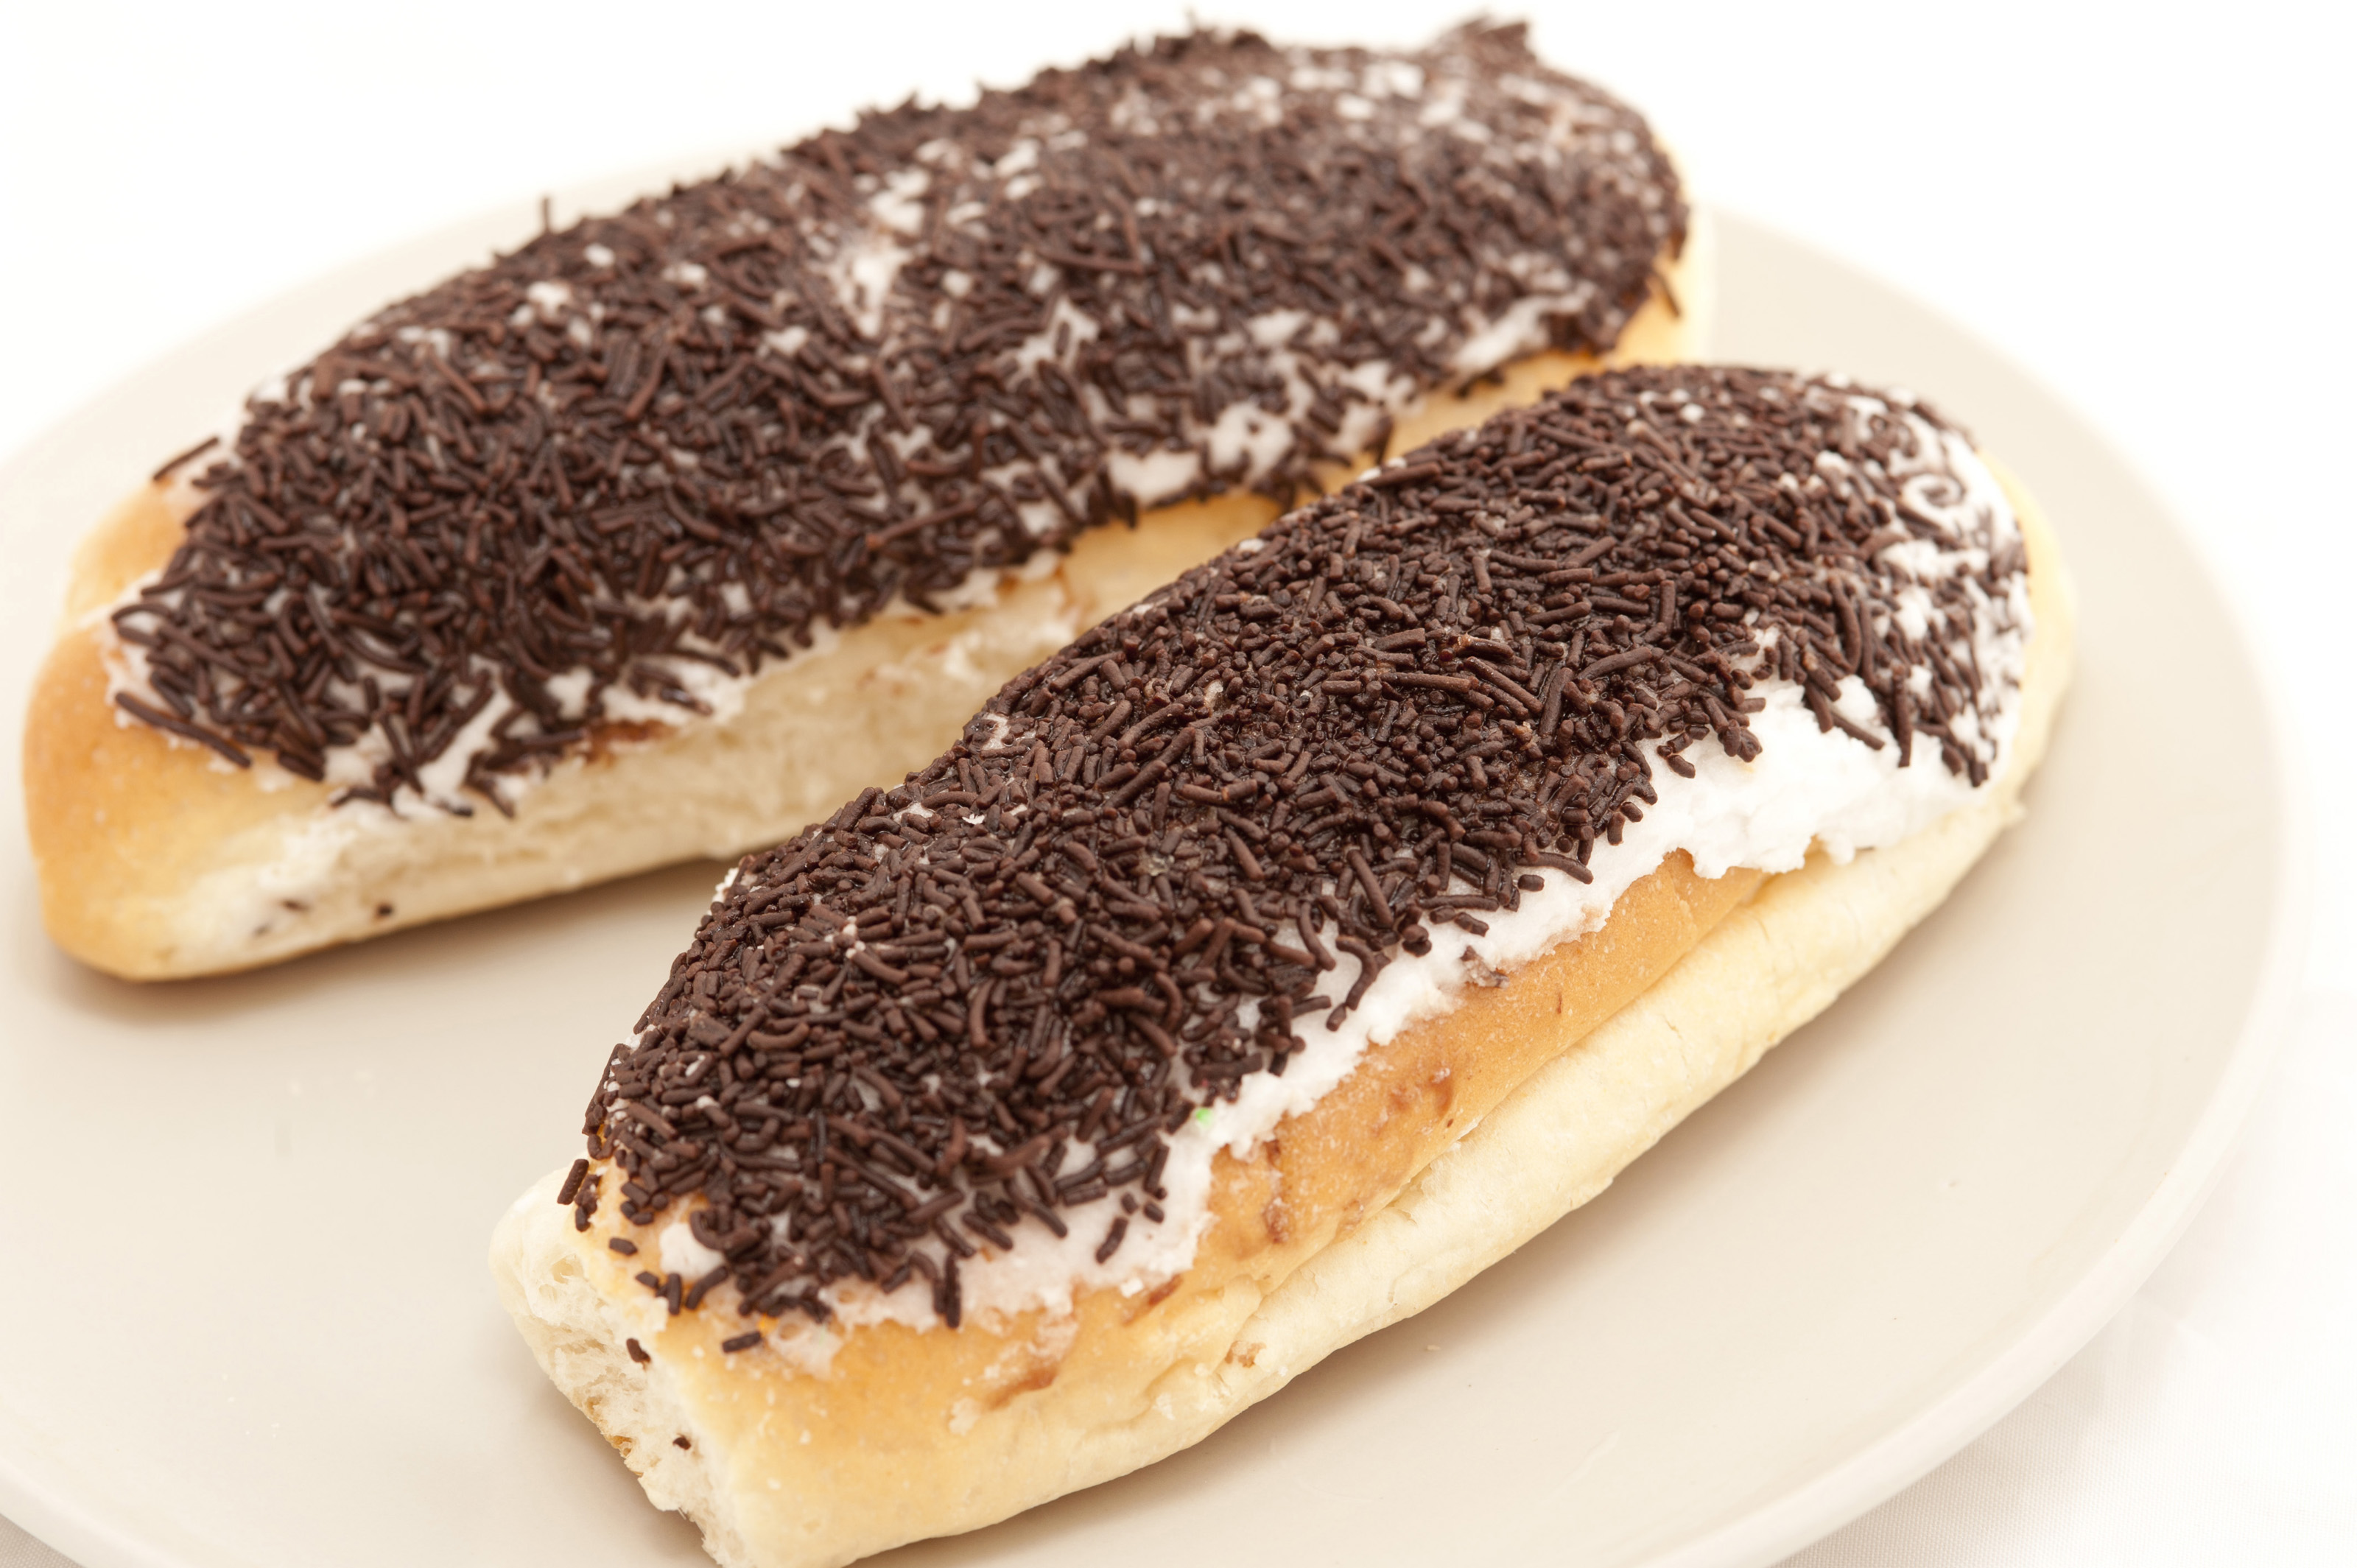 Freshly Buns Topped With Chocolate Sprinkles On A Plate For A Tasty Dessert Or Refreshments For